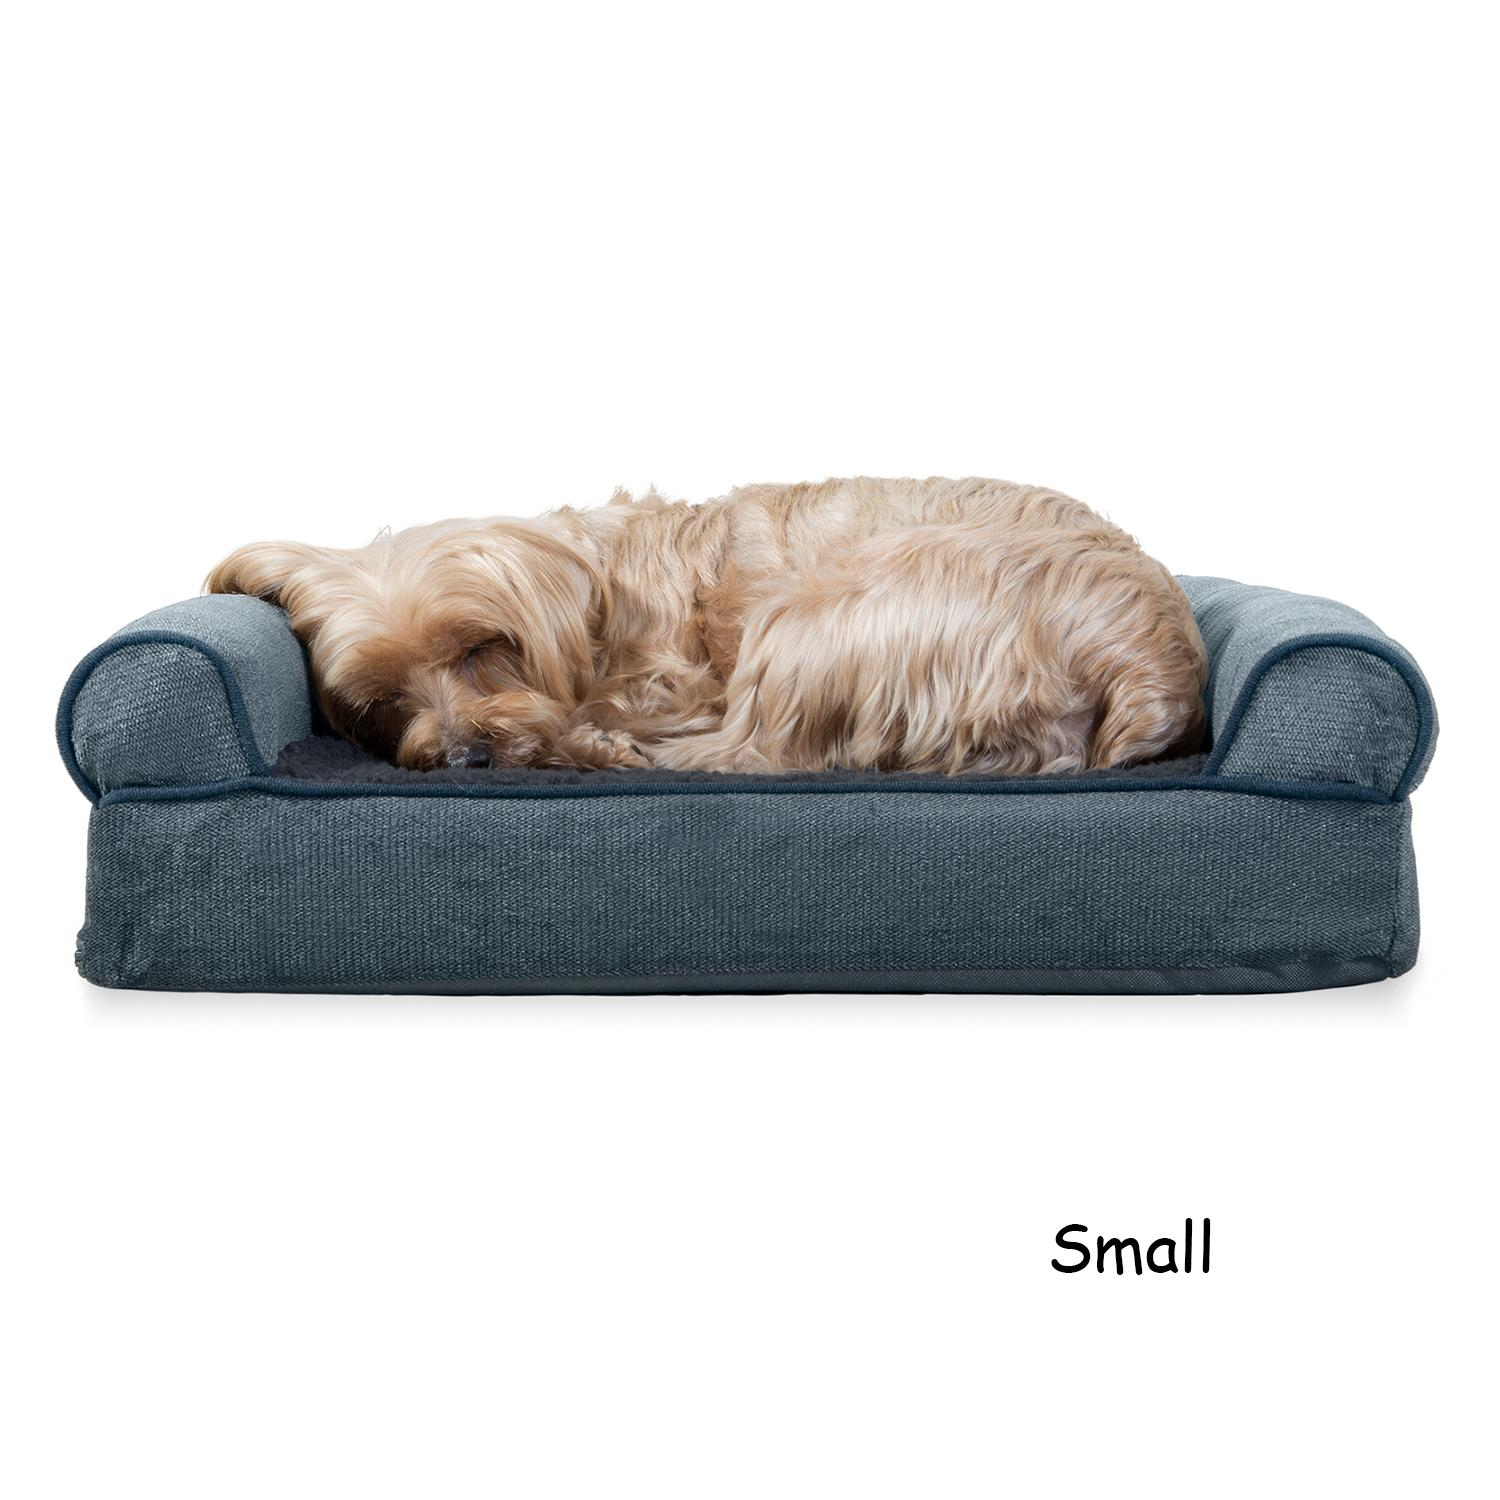 FurHaven Faux Fleece & Chenille Soft Woven Orthopedic Sofa Dog Bed - Orion Blue